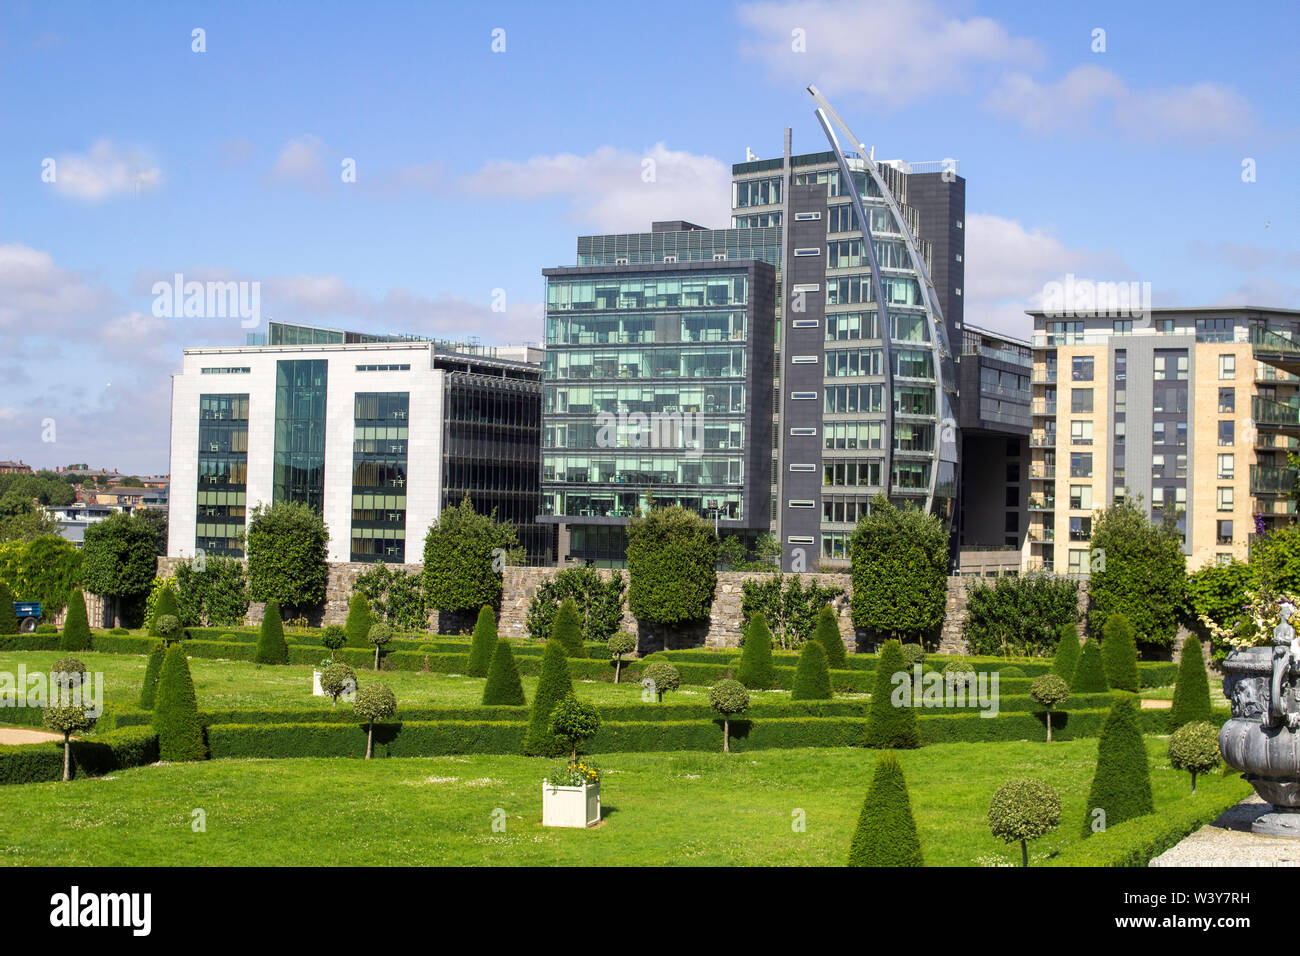 The formal gardens of The Royal Hospital, Kilmainhan, Dublin, Ireland and in the background the Heuston Quarter office, apartment and retail complex. - Stock Image